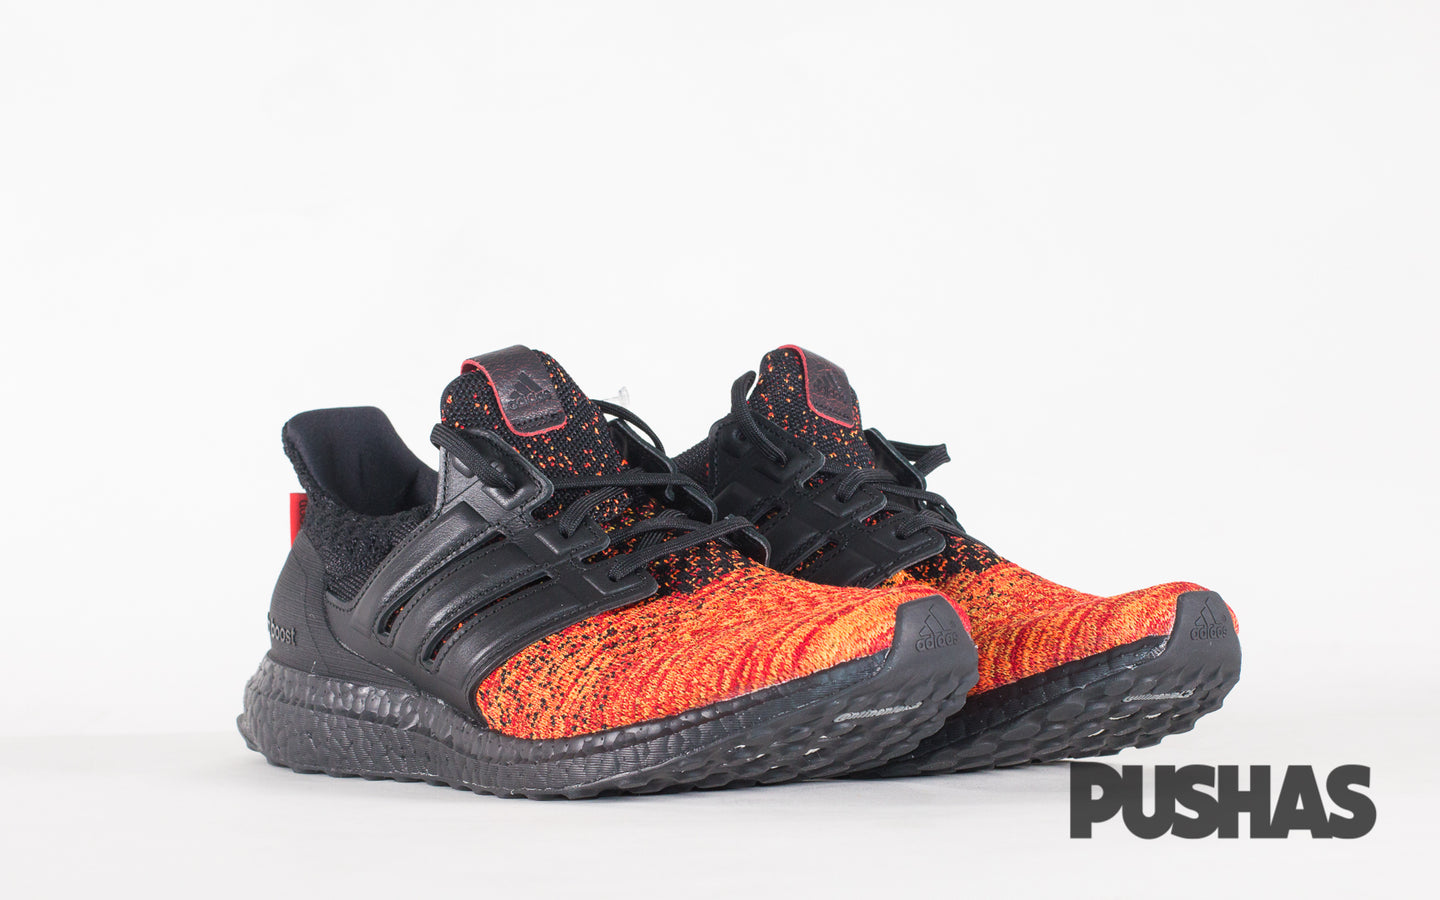 pushas-Adidas-Ultraboost-Game-Of-Thrones-Dragons